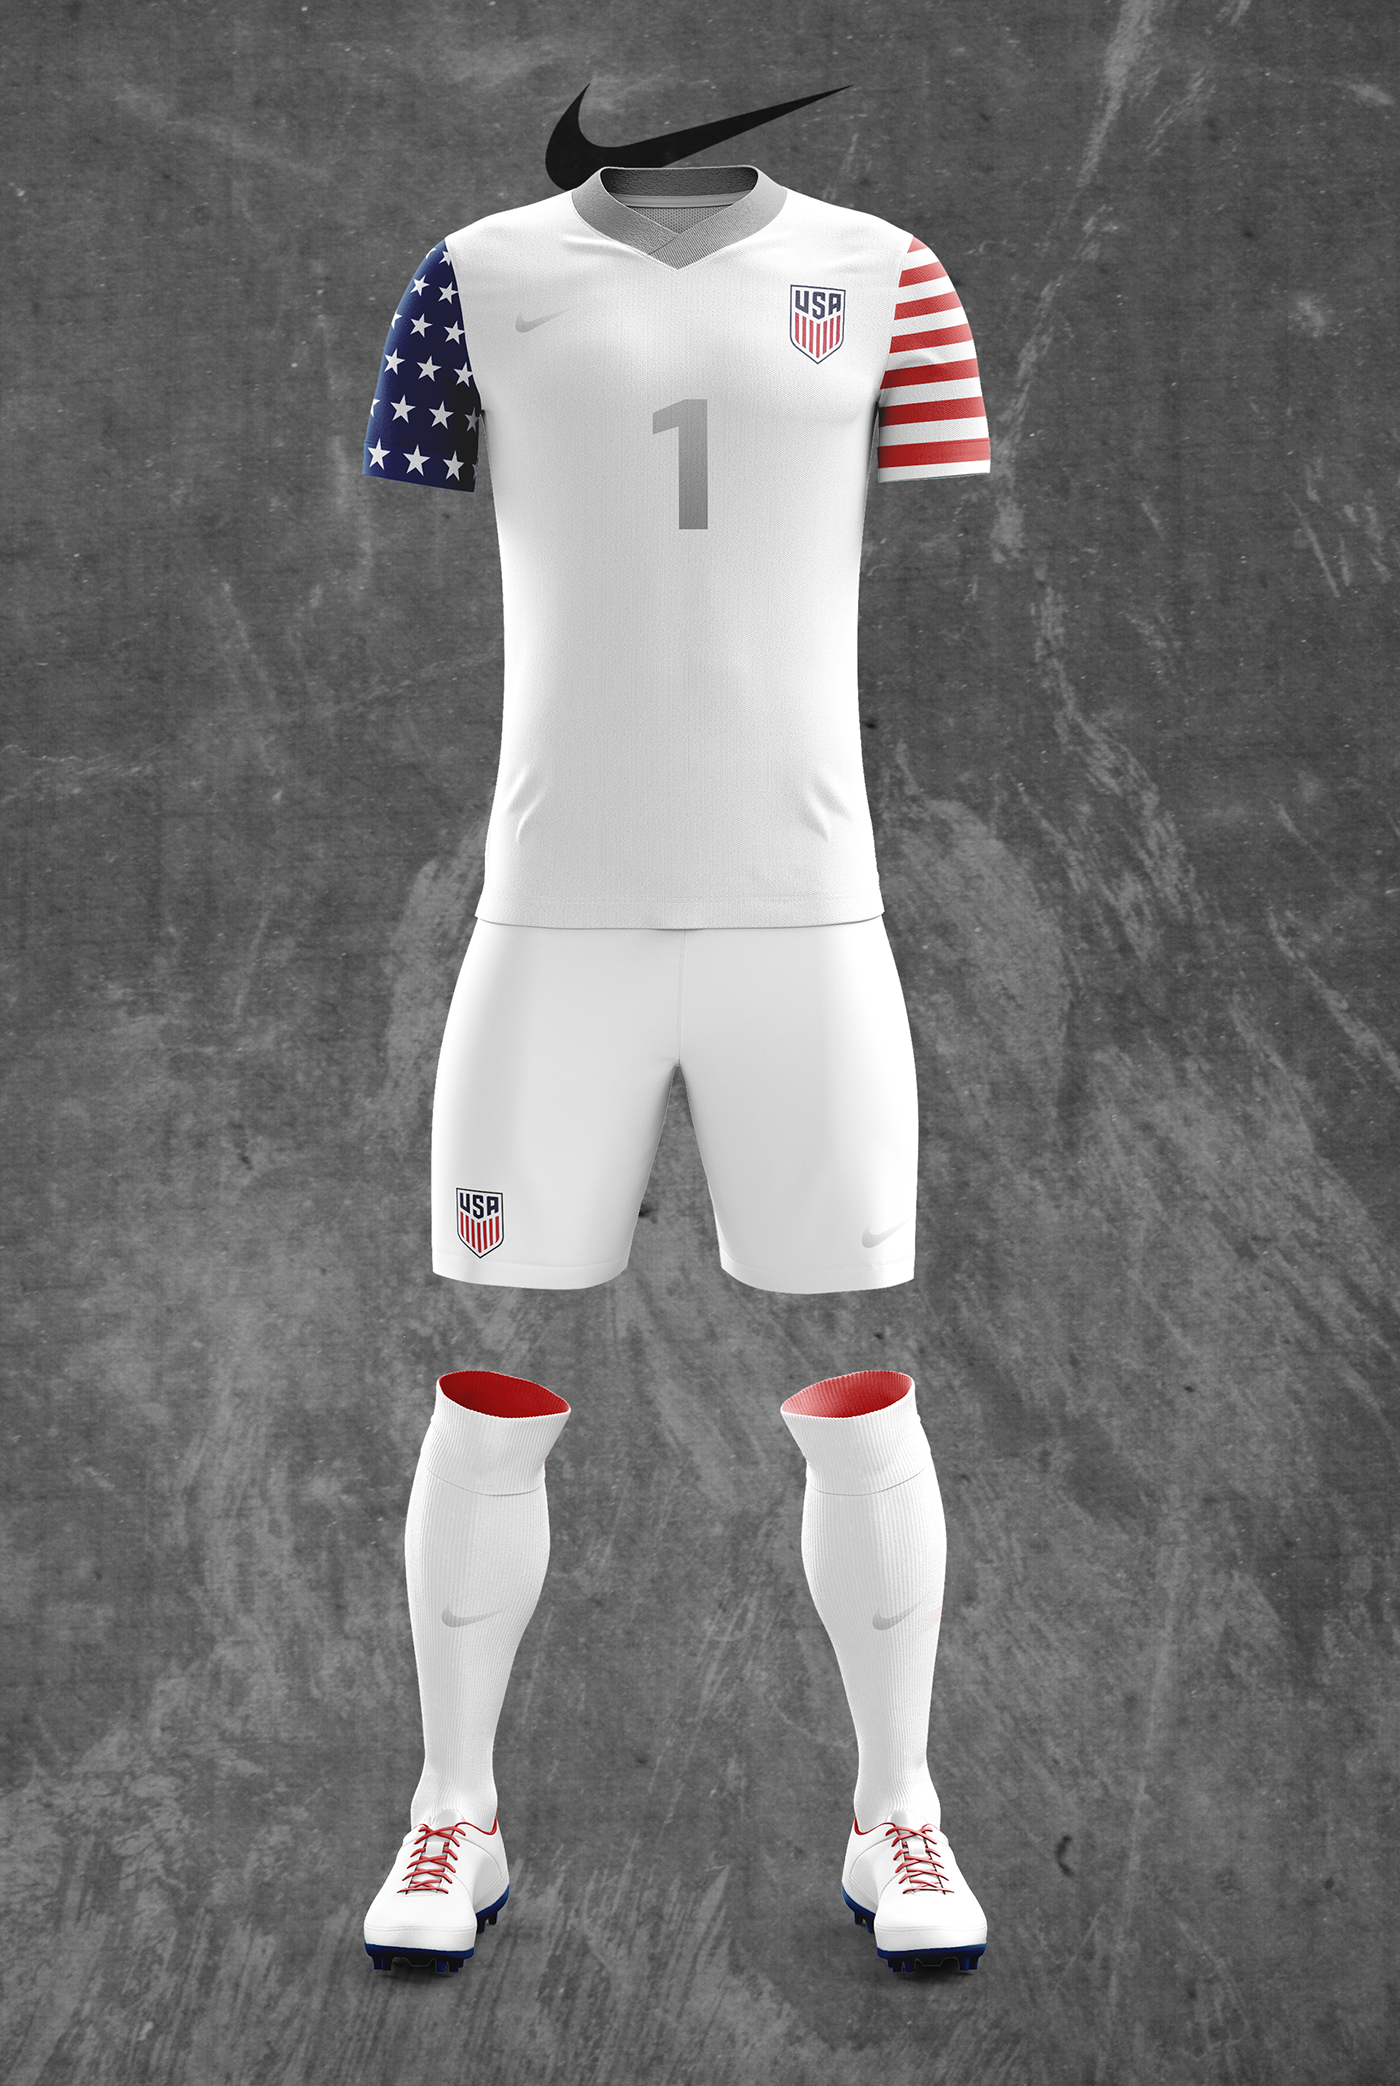 concept us mens national team nike soccer kit designs on